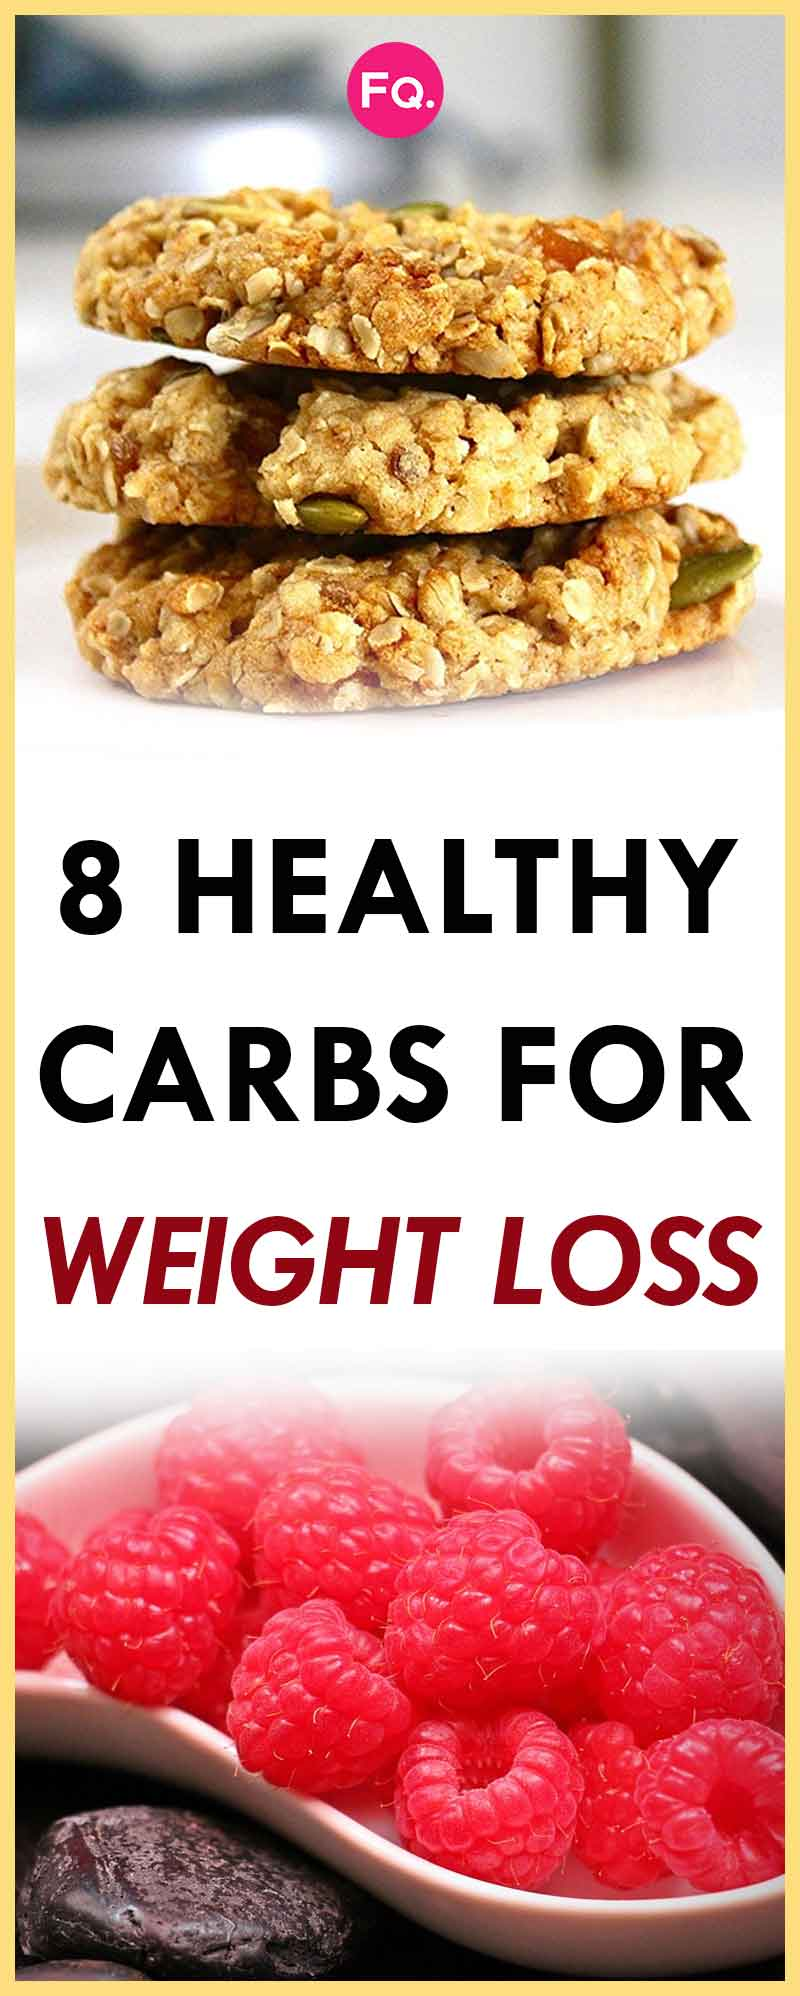 Healthy-Carbs-For-Weight-Loss-low-carb-diet